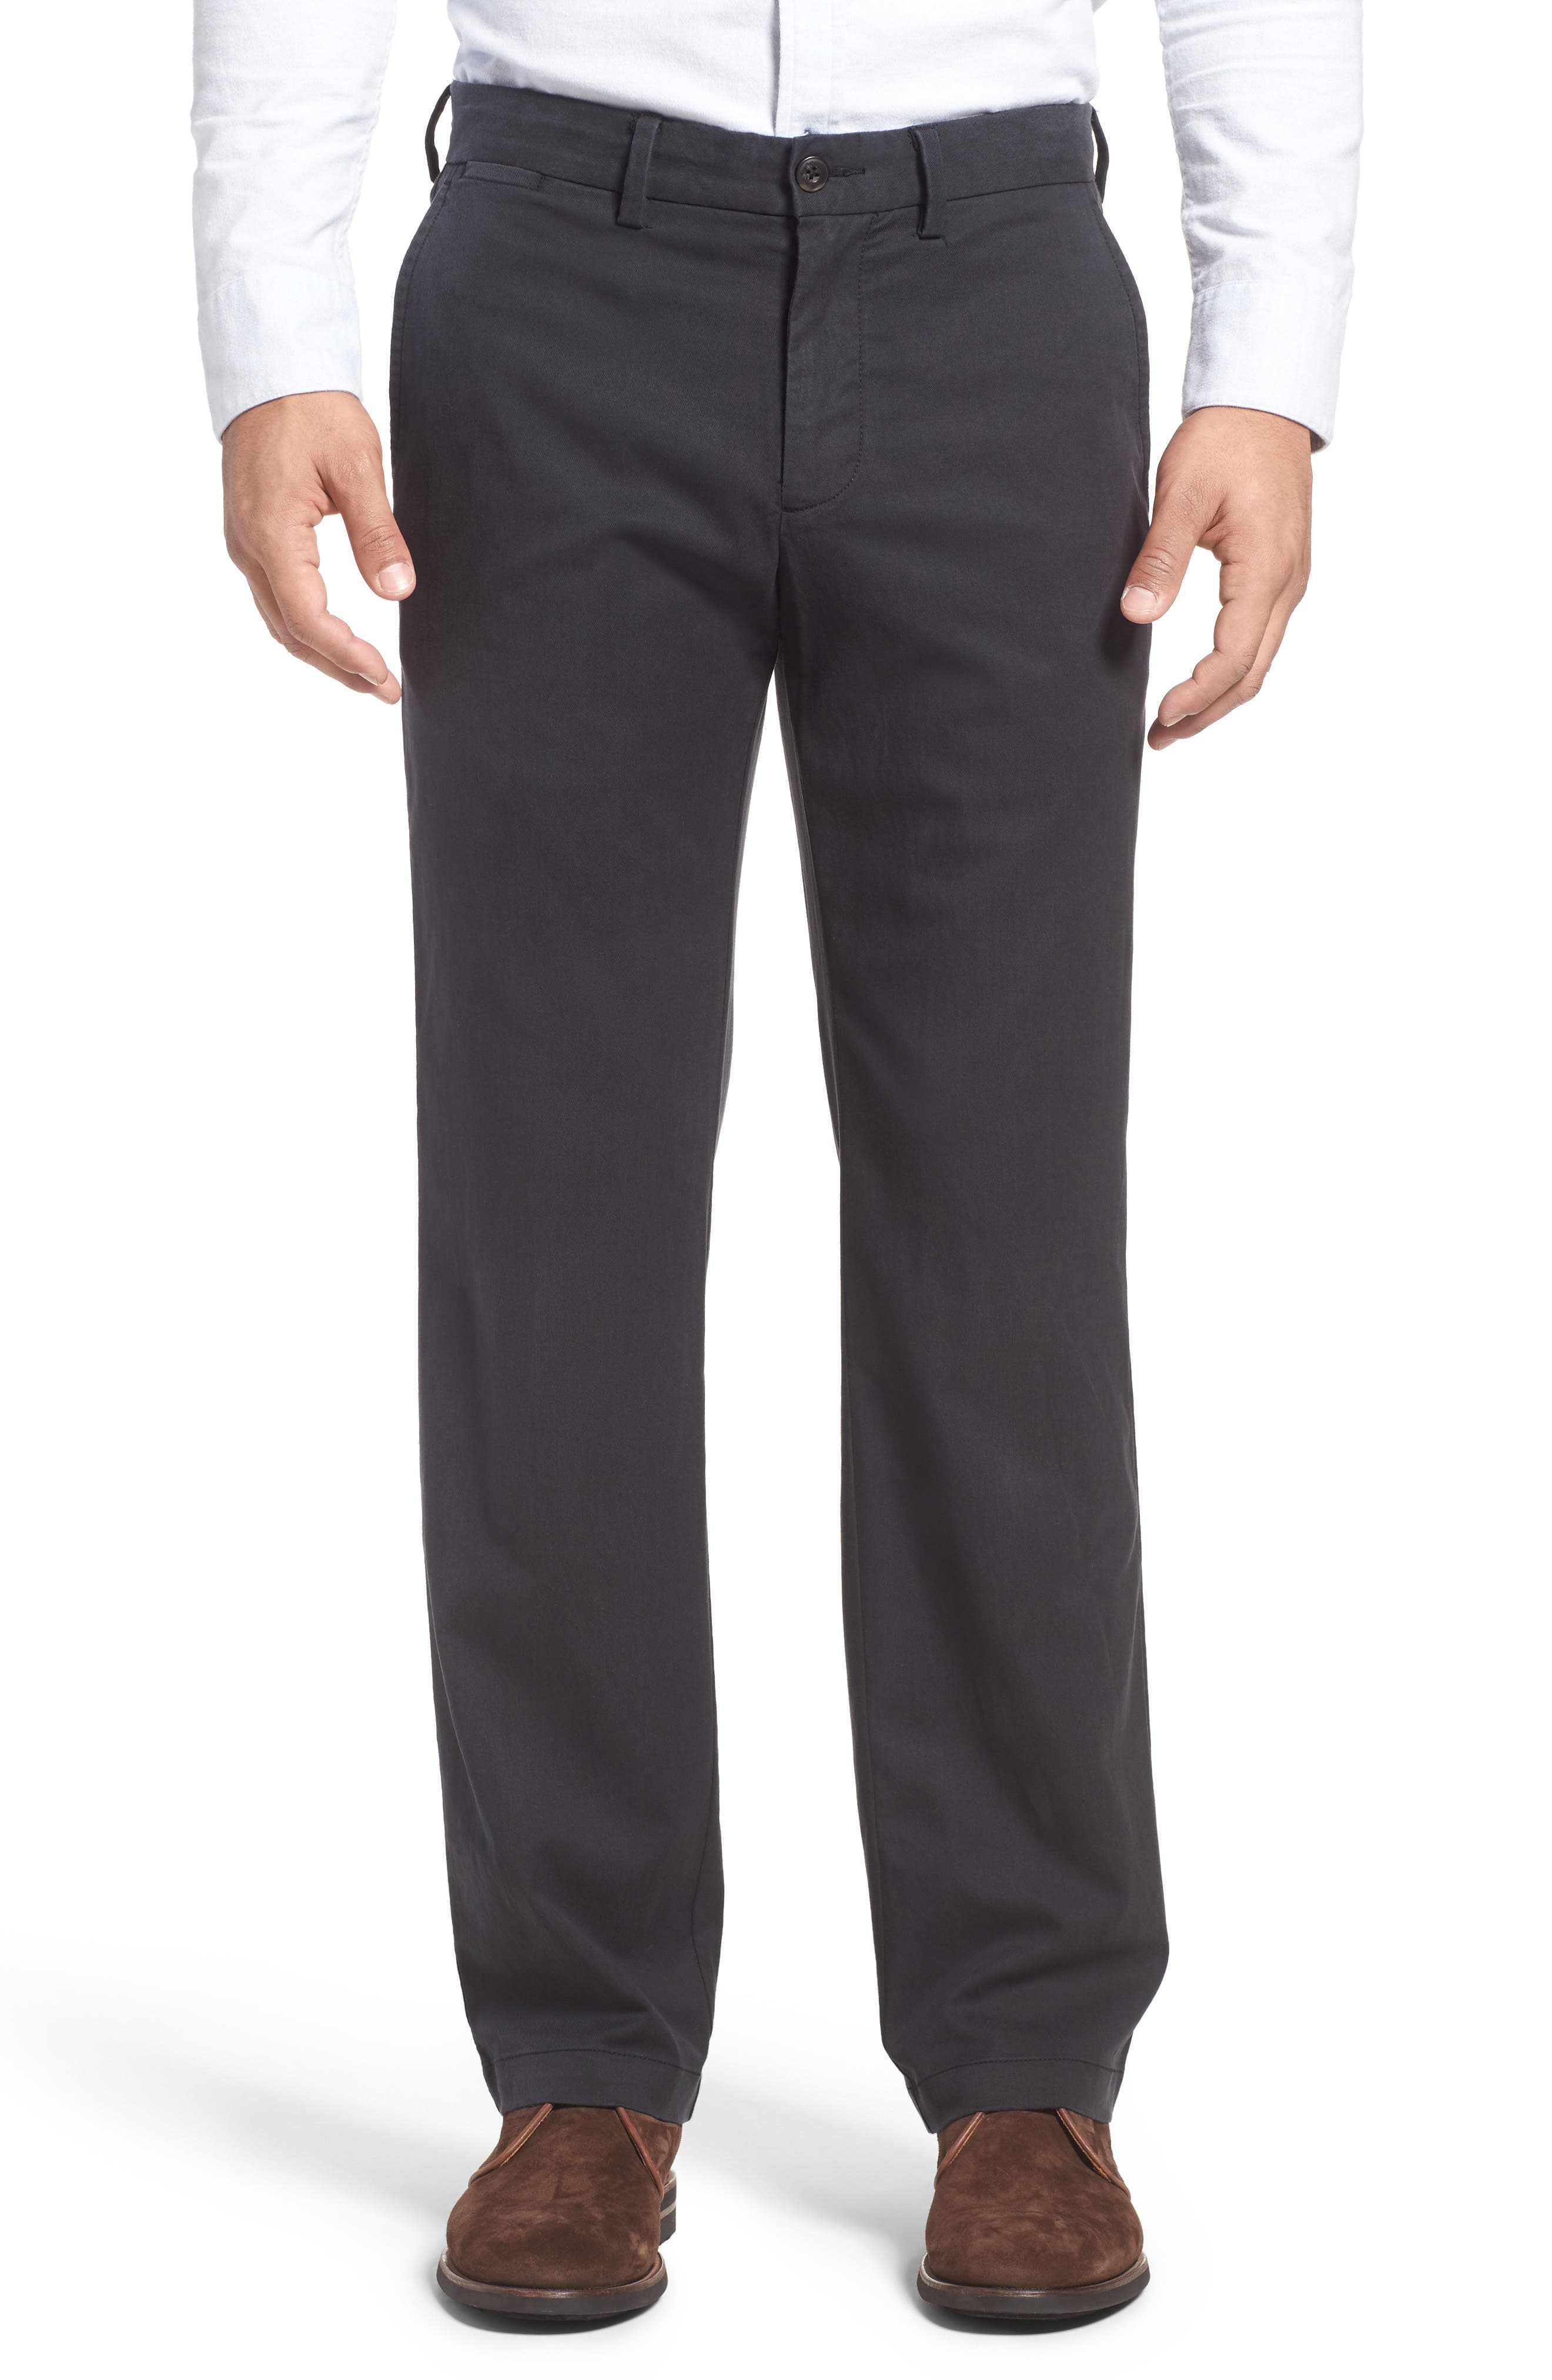 Alternate Image 1 Selected - Tommy Bahama Offshore Flat Front Pants